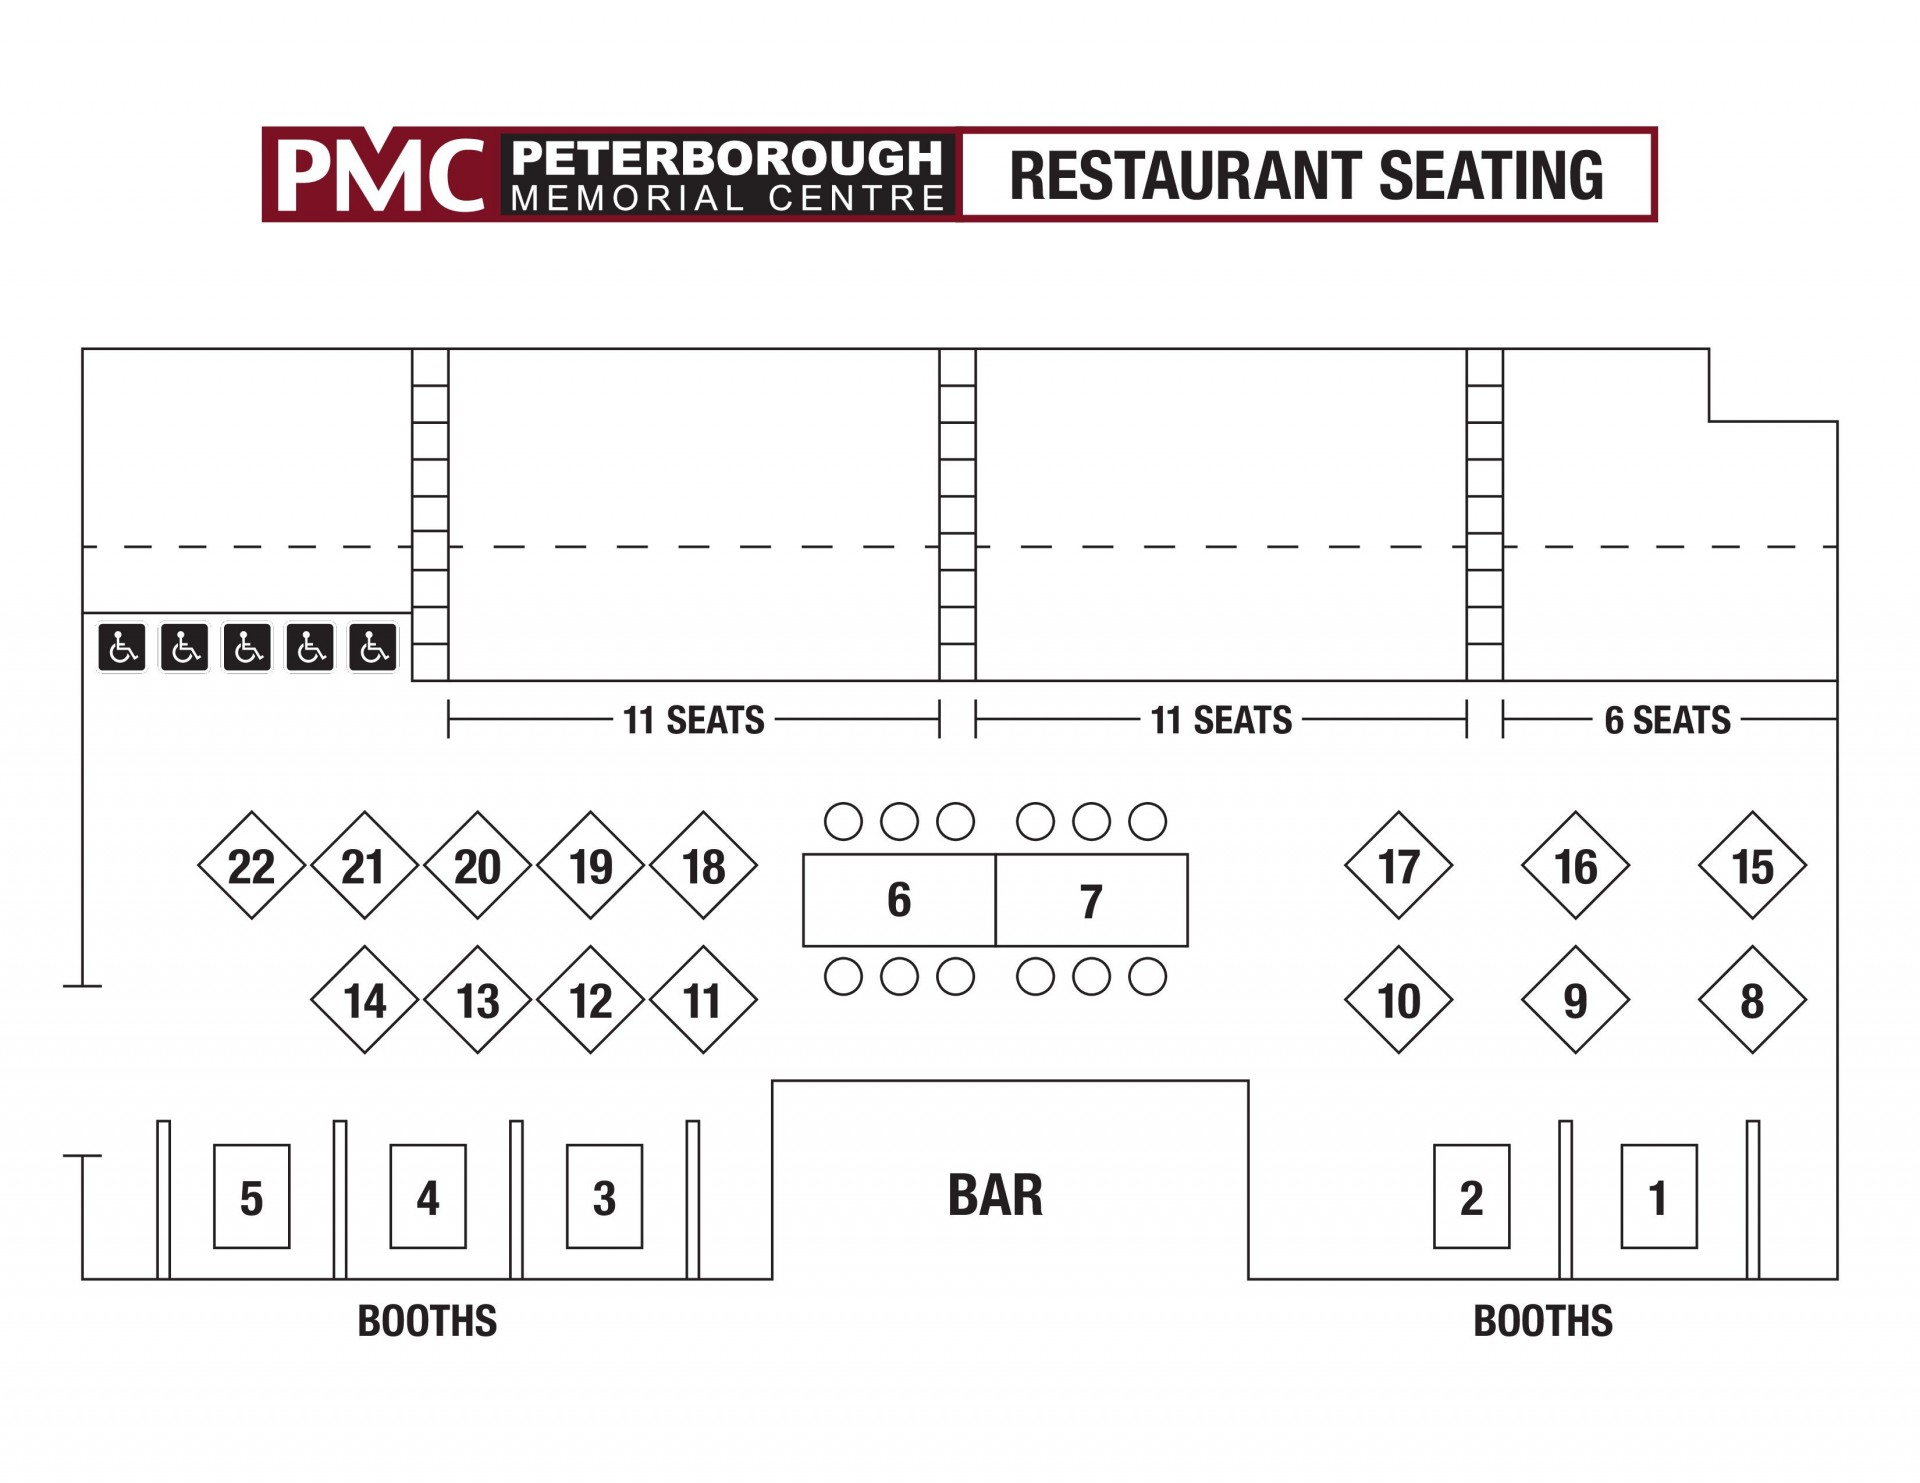 006 Impressive Restaurant Seating Chart Template Sample  Software Excel Word1920